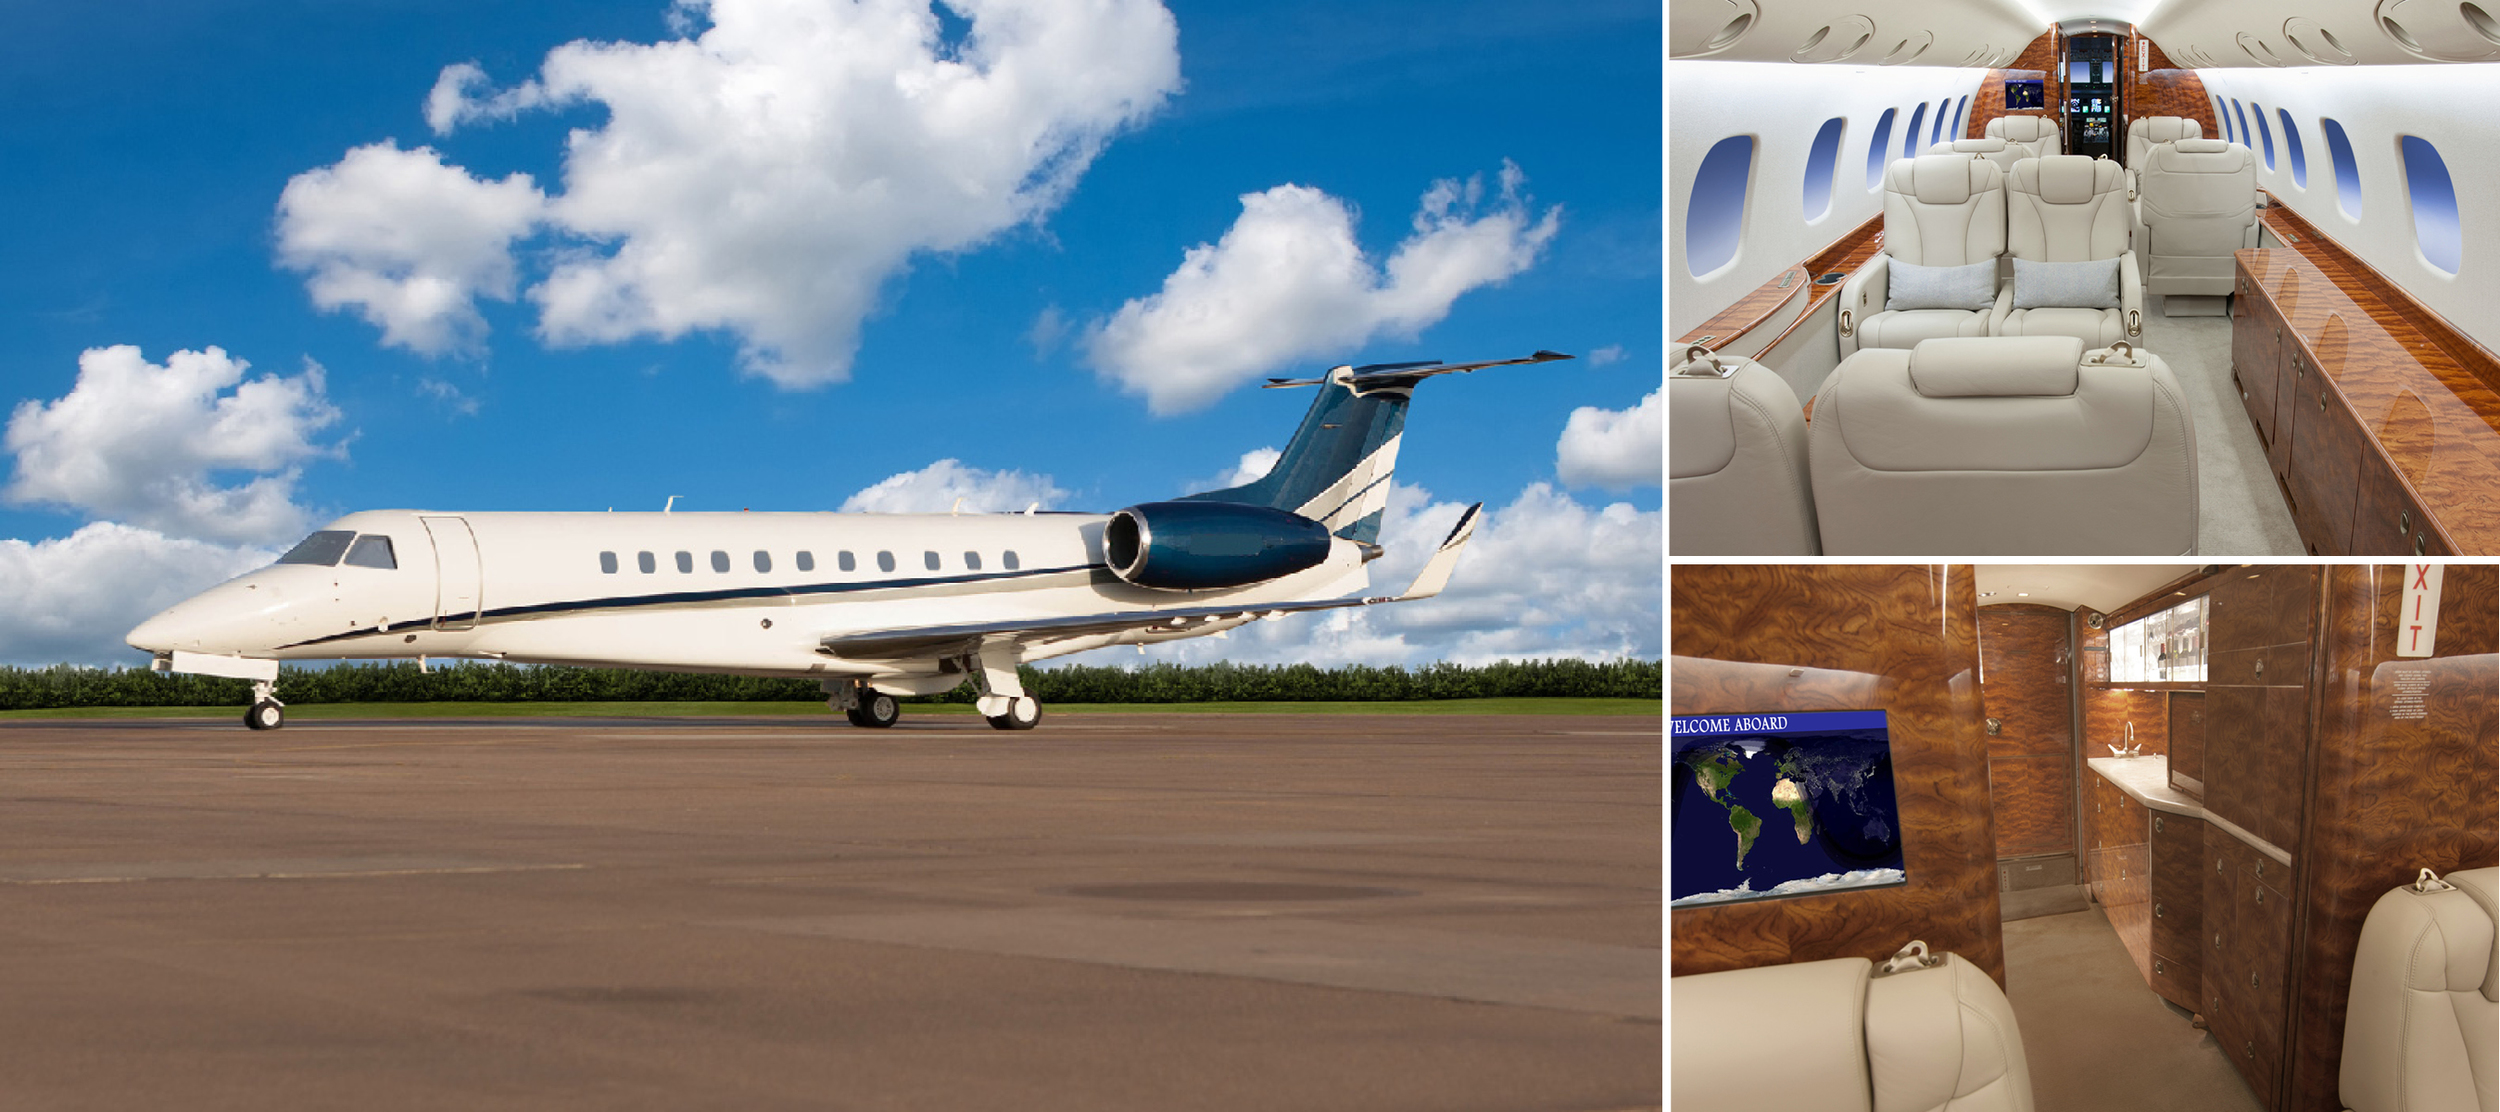 Elite Air has added a Legacy 600 and a second Citation X to its fleet in Houston, Texas. The aircraft is captained by industry veteran George Harpole (below).